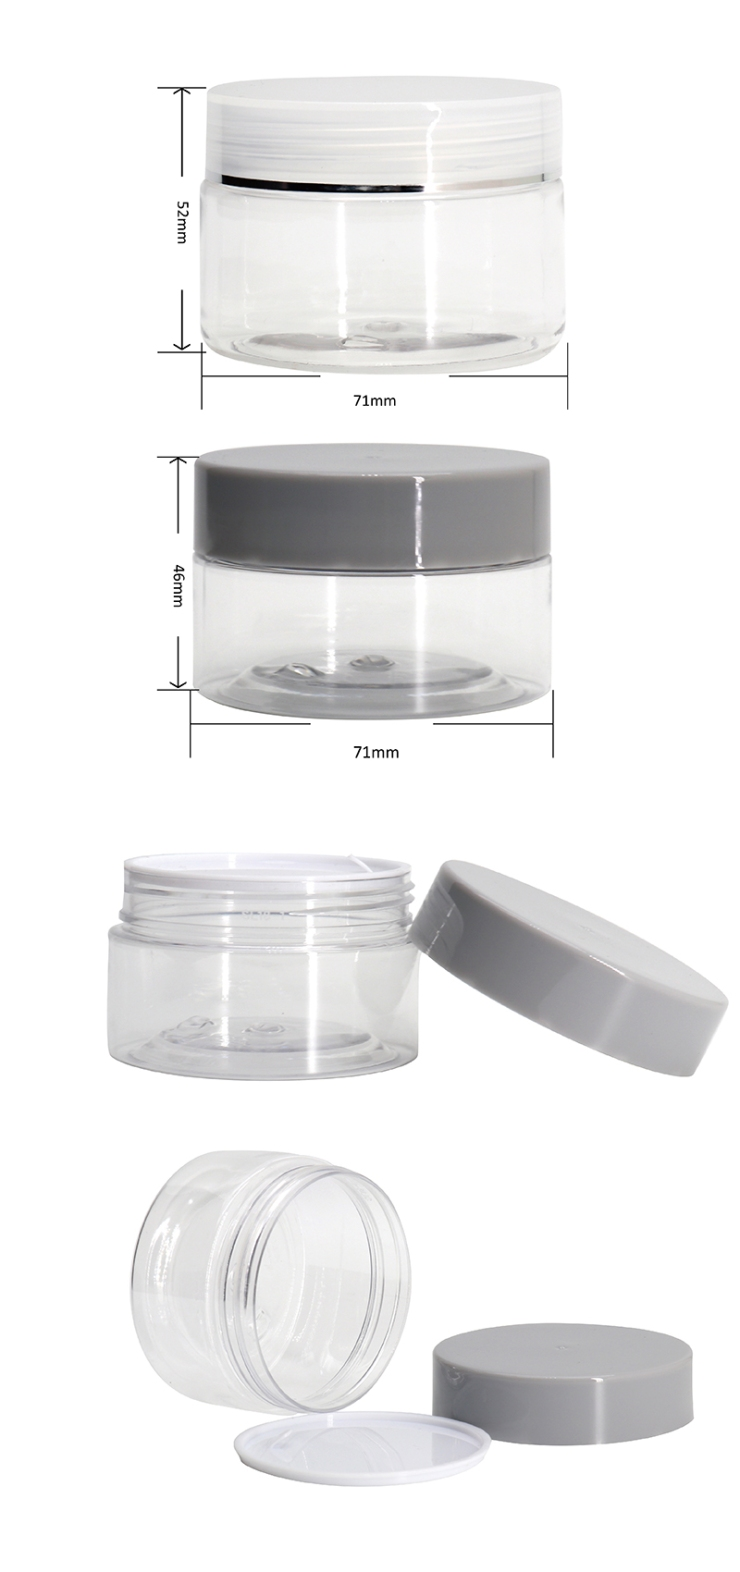 Factory Price Empty Cosmetic Container Clear Plastic PET Jars detais